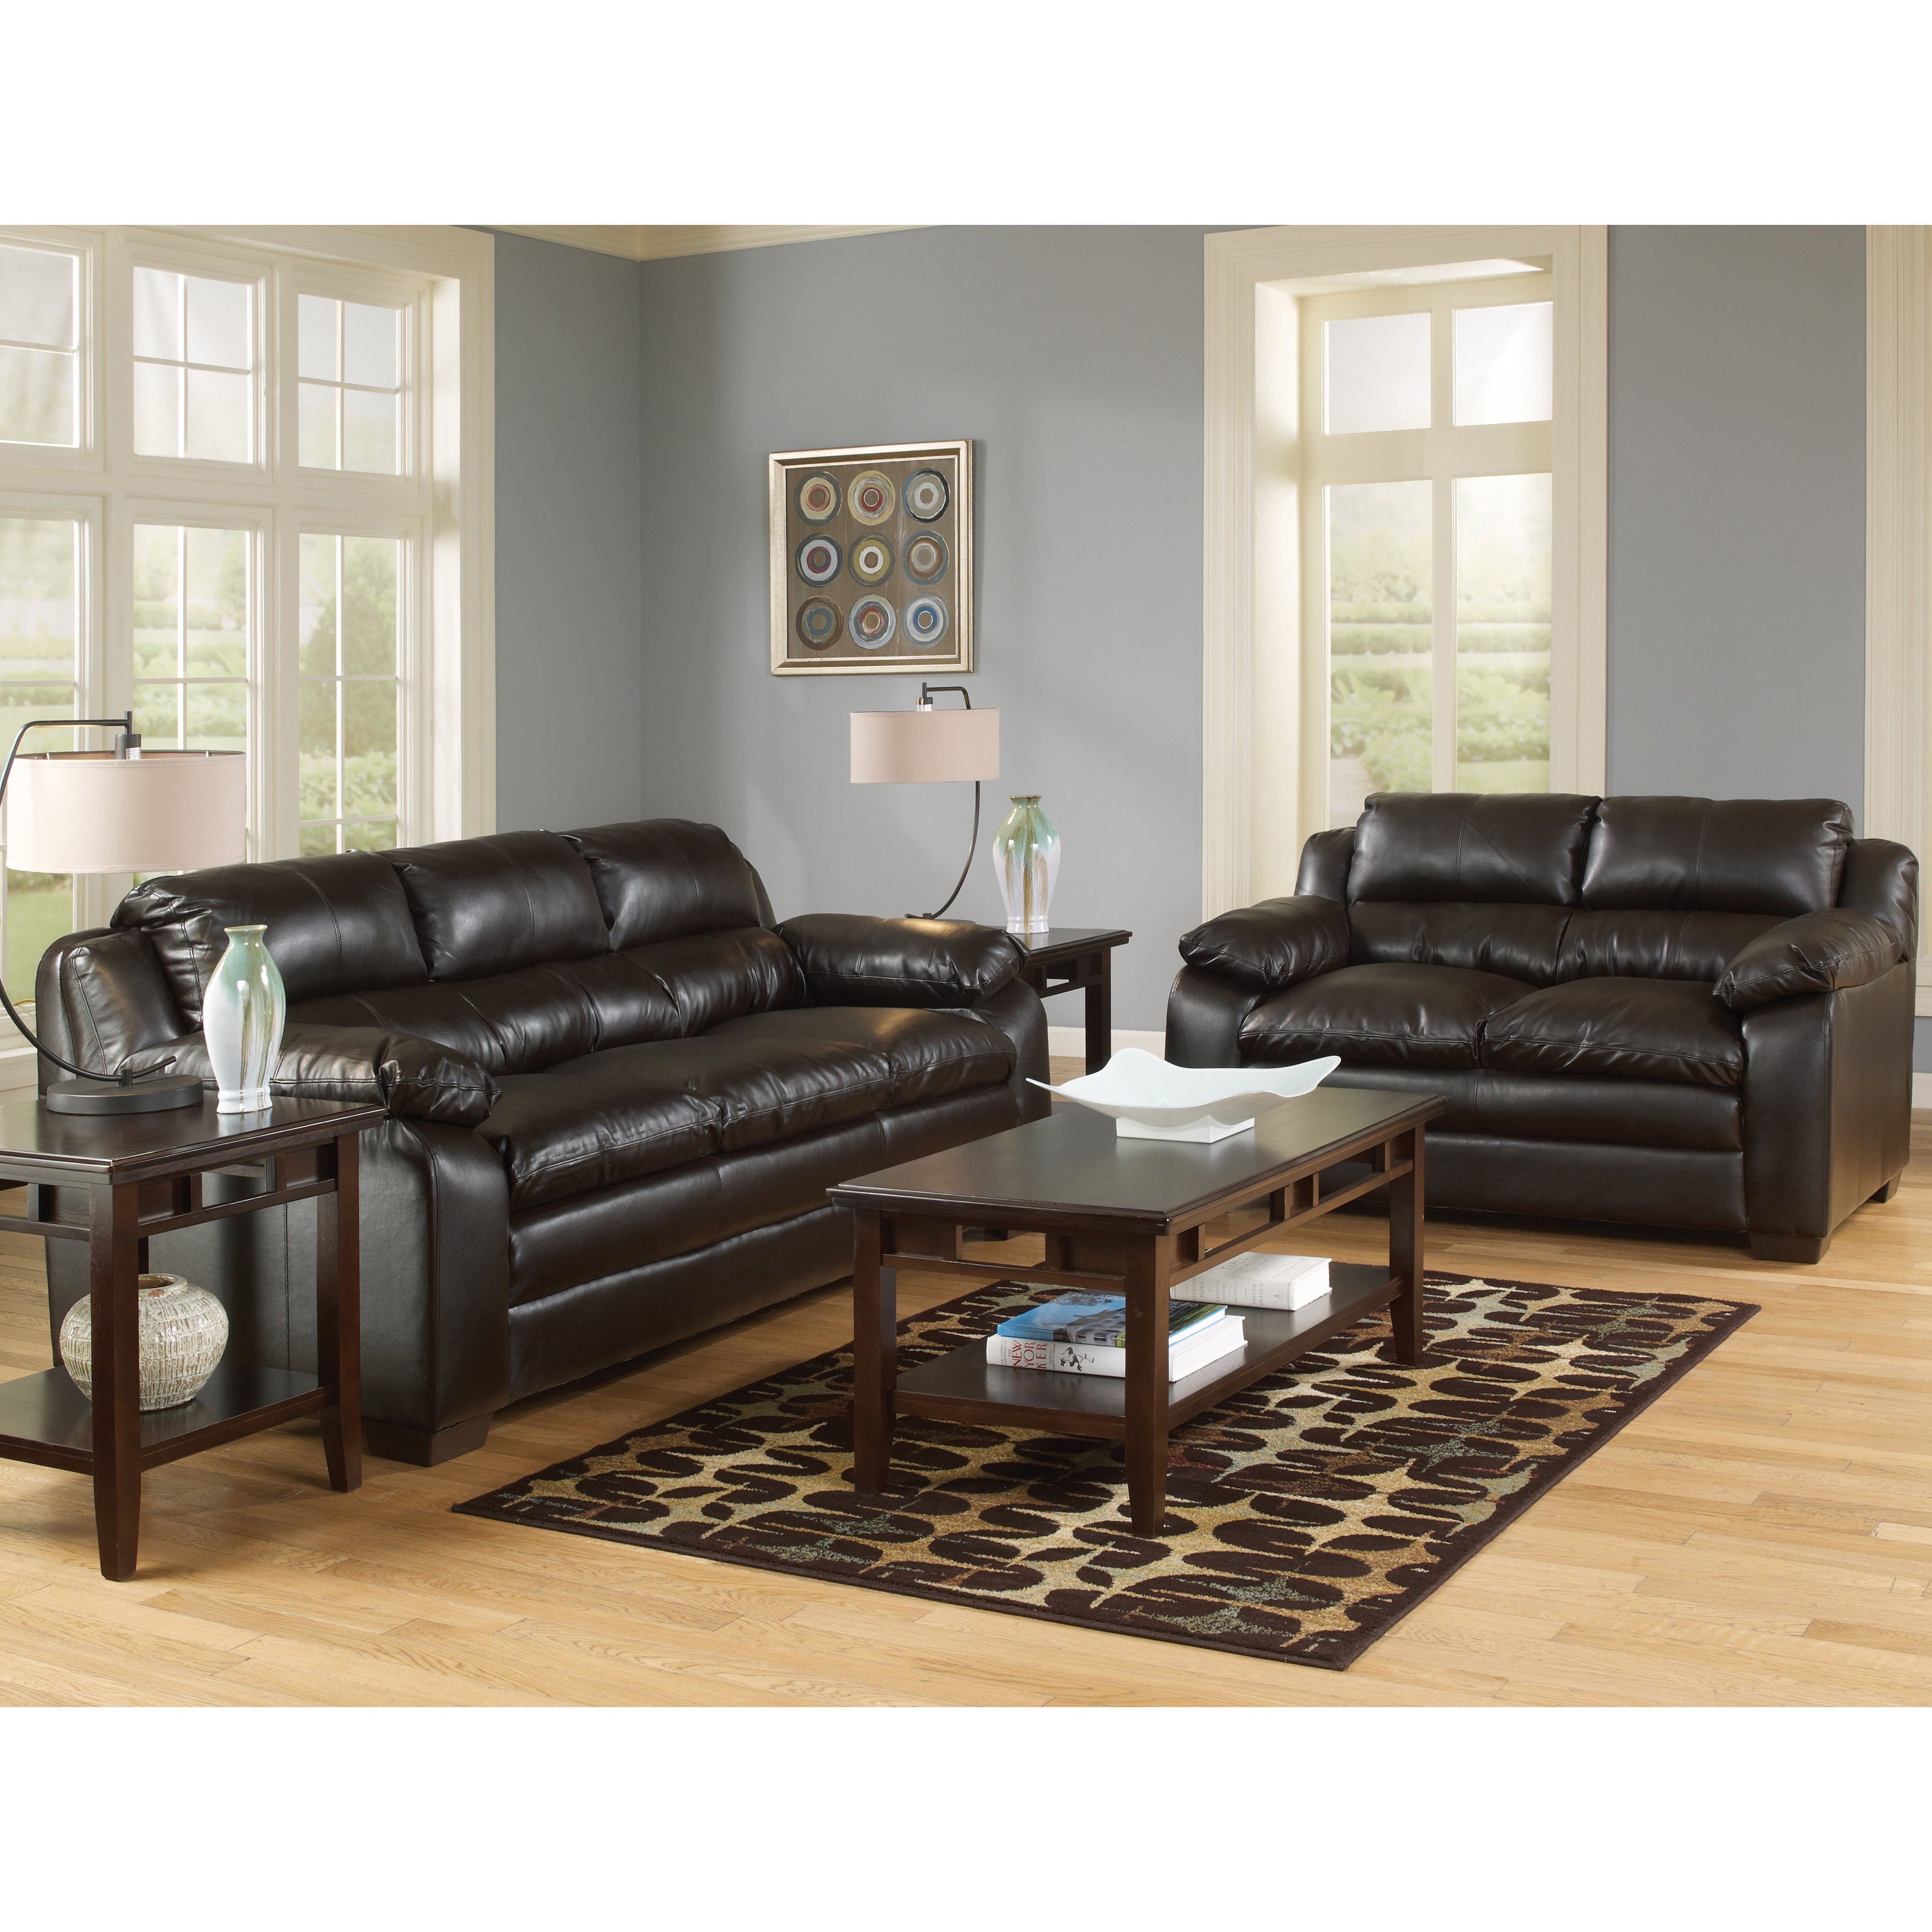 Shop Art Van Maddox Espresso Sofa And Loveseat Set – Free Shipping In Maddox Oversized Sofa Chairs (Image 19 of 25)